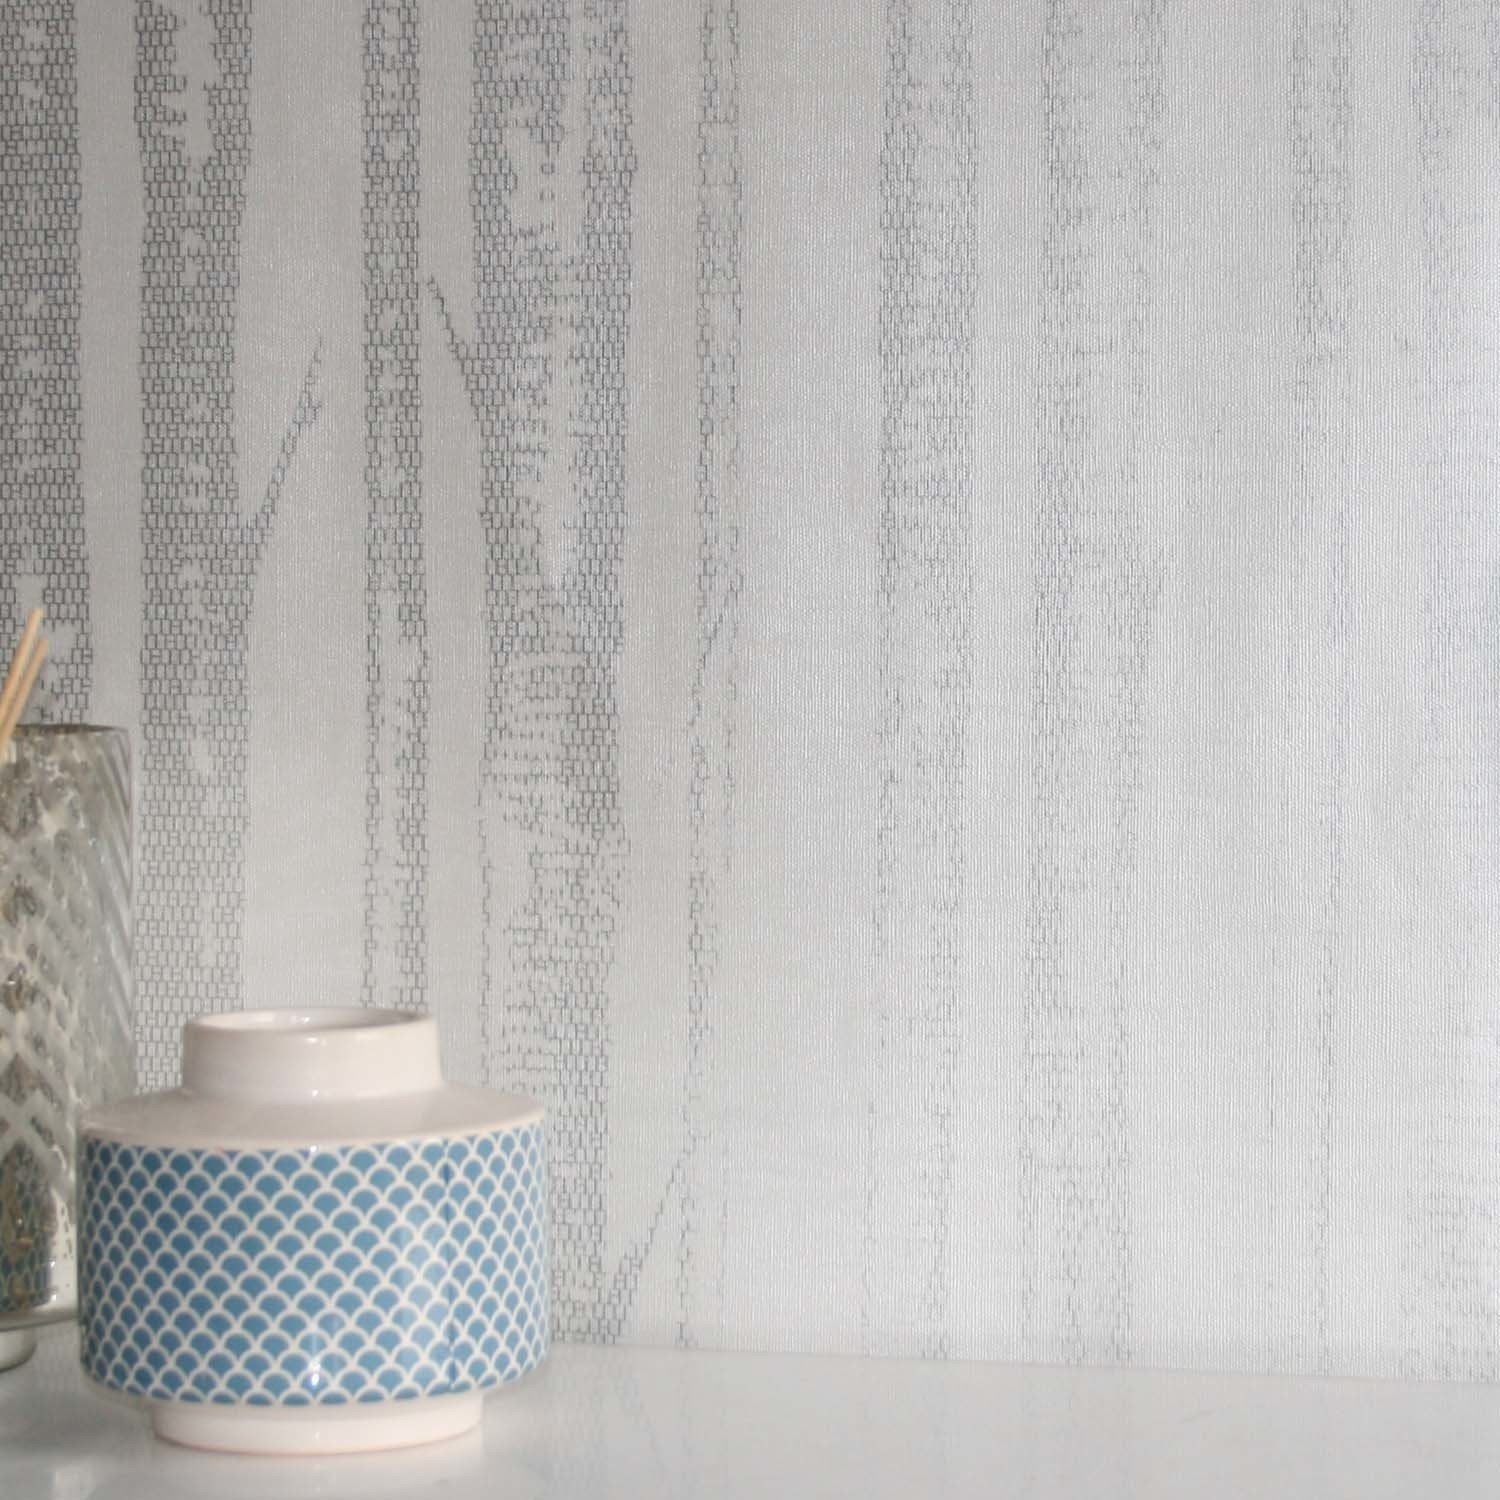 Woods' Tree Motif  Wallpaper | White & Metallic SilverThis super cool tree patterned wallpaper is reminiscent of standing in a wood. The trees look amazing with grid style pattered effect giving this wallpaper a real up to date feel and design. The white provides a matt background in which the metallic silver trees sits. It provides a simple yet decadent look. What more could you ask from a paper!h10m X w53cmStraight MatchPattern Repeat 32cm